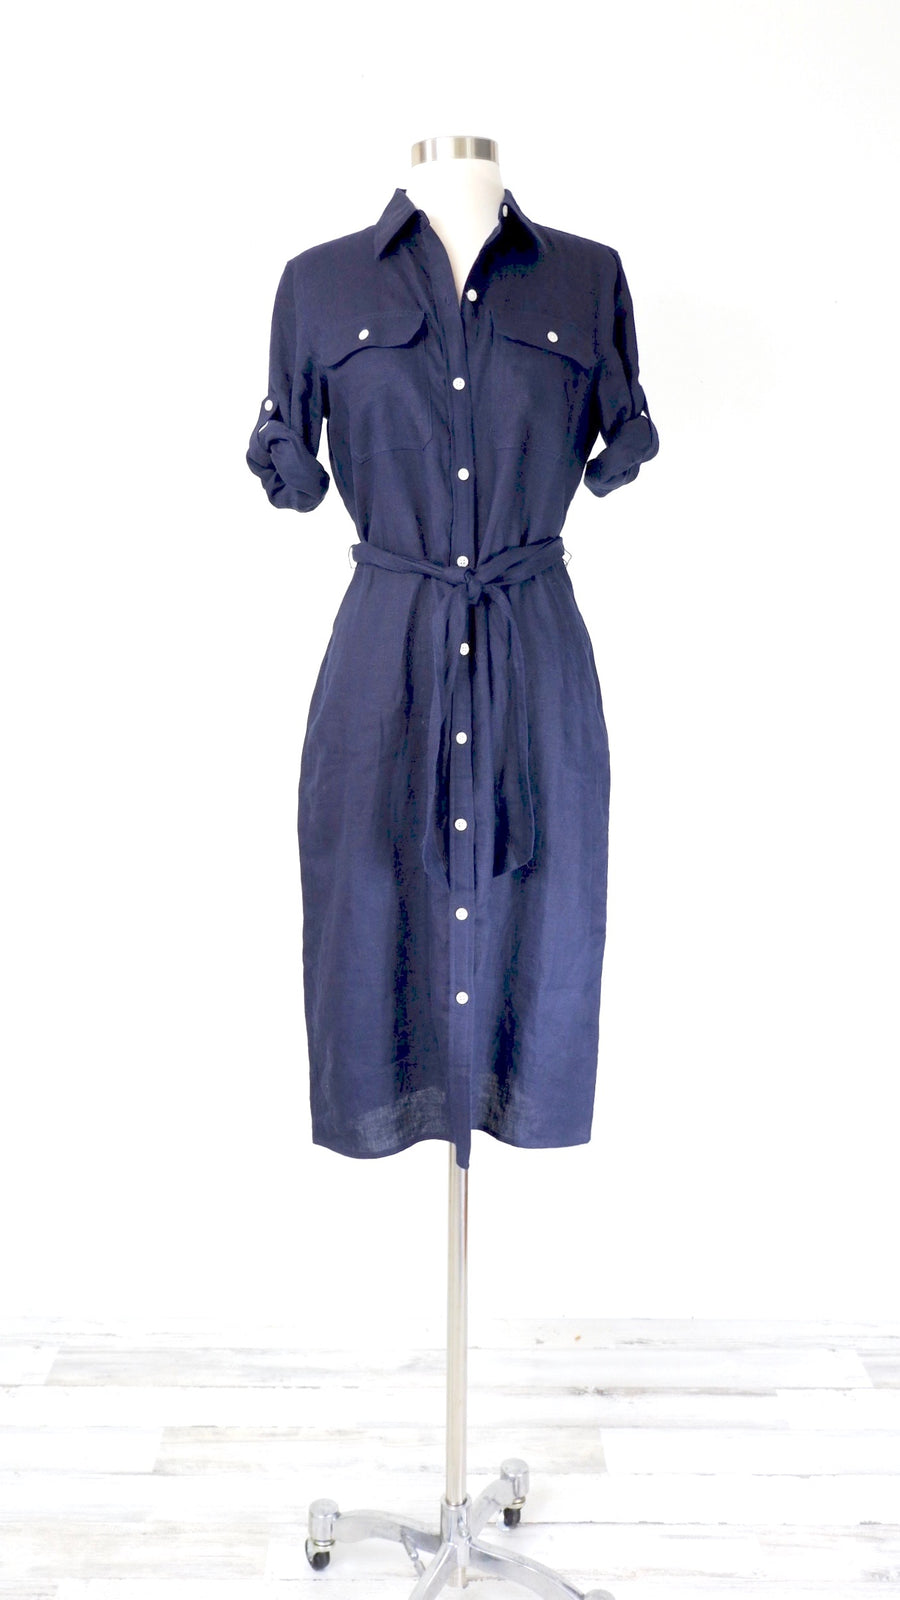 Ralph Lauren Navy Linen Shirtdress (S)